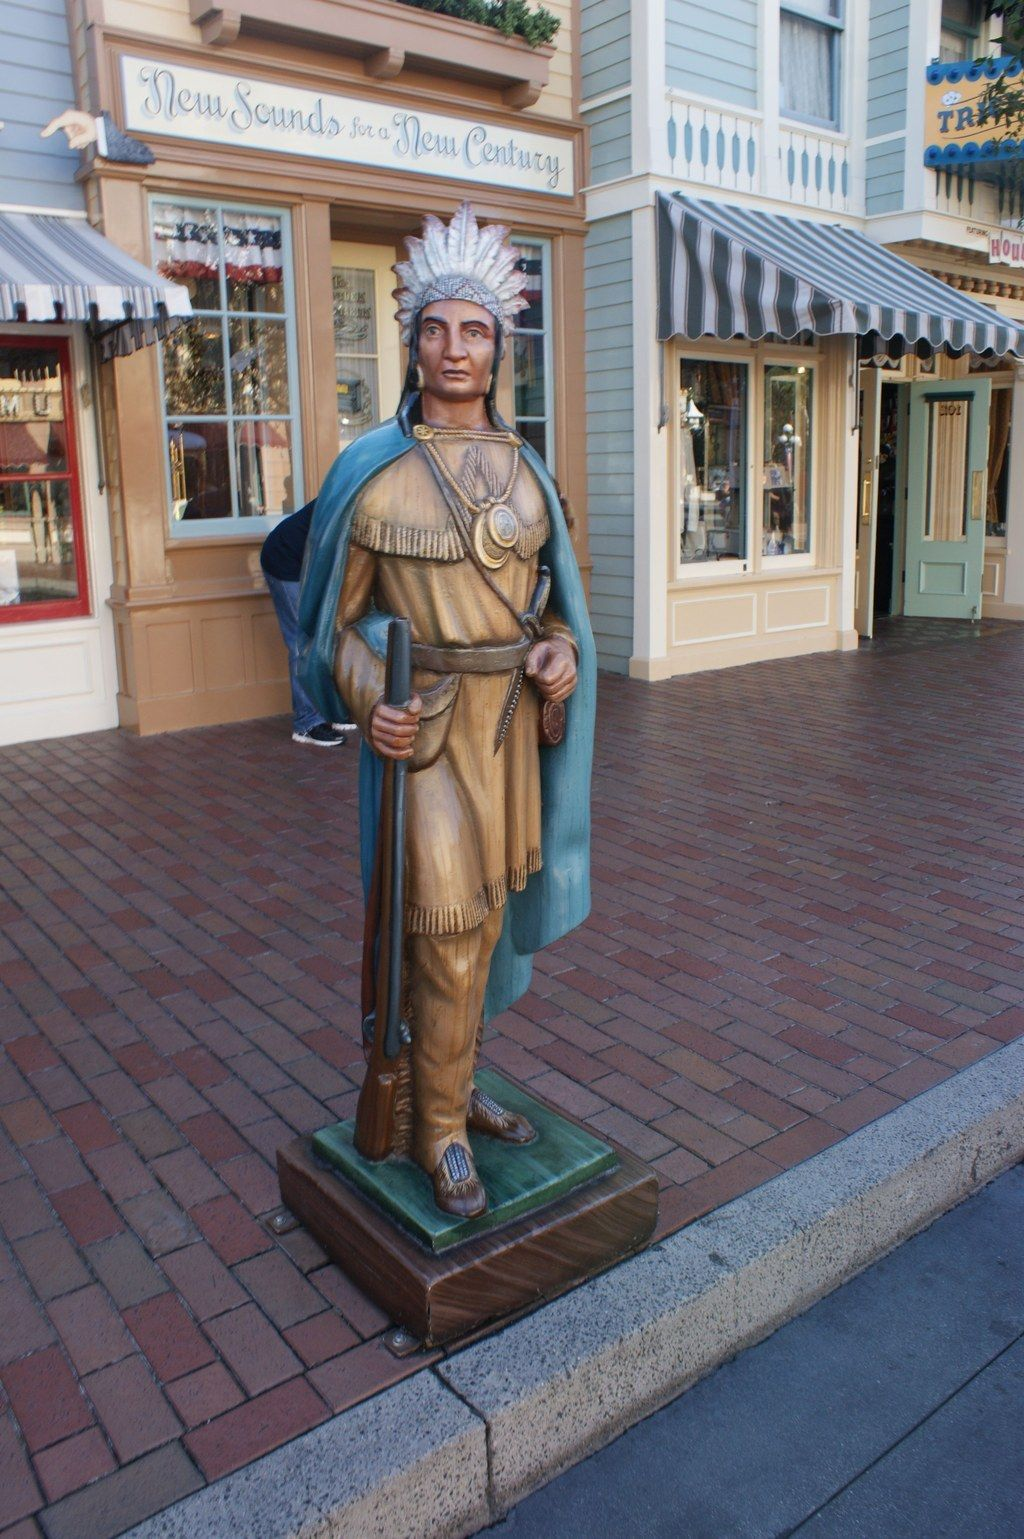 Indian Smoke Shop >> There S A Cigar Store Indian From When There Was A Smoke Shop